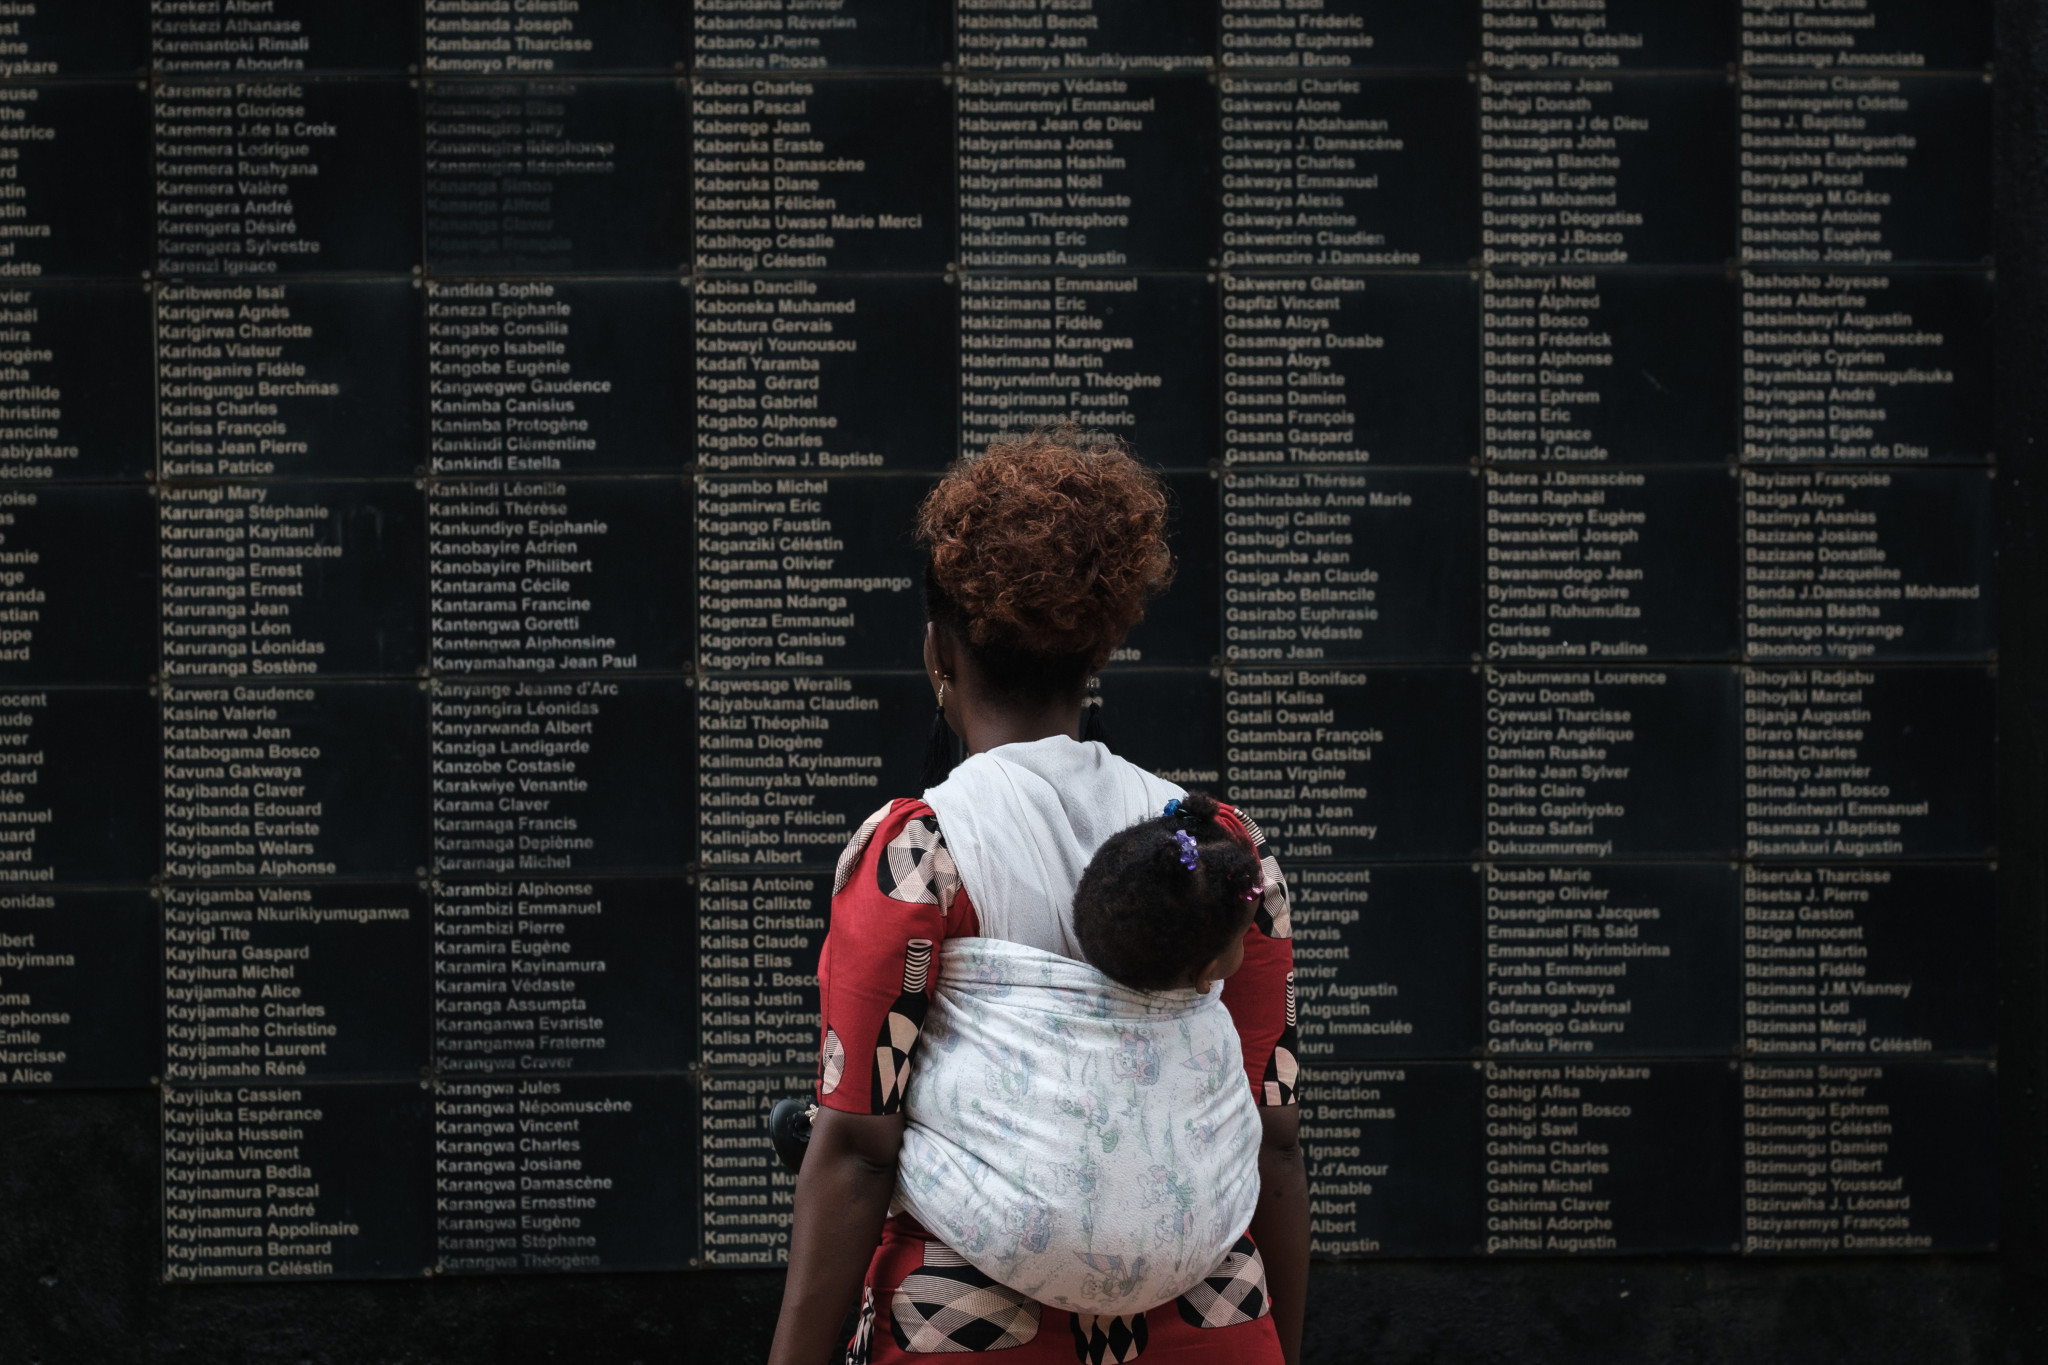 A mother carries her child at the Rwandan Genocide Memorial in Kigali ©Getty Images